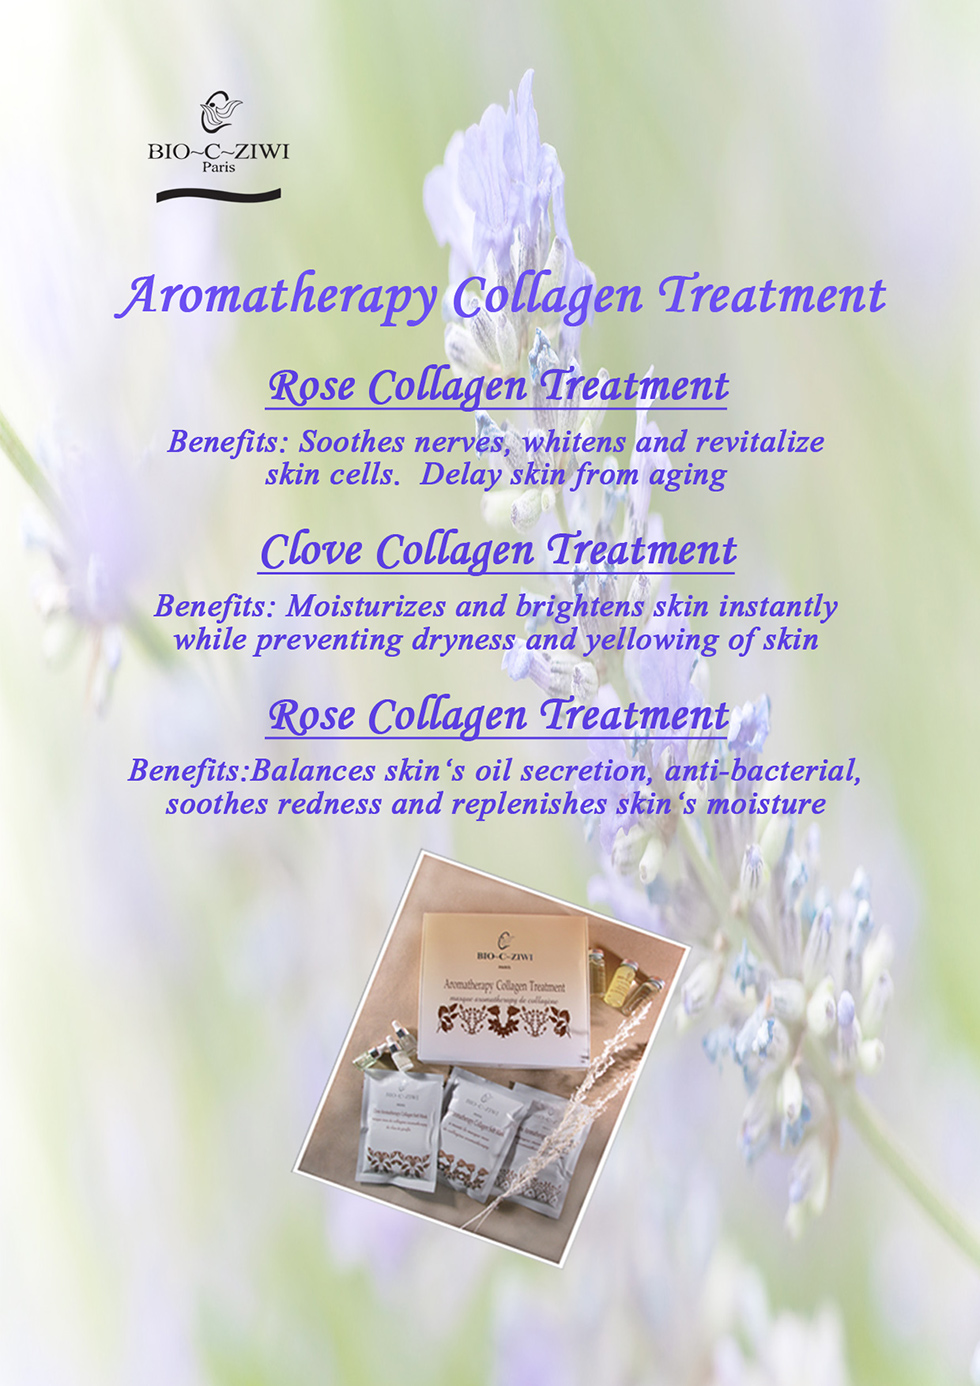 Aromatherapy-Collagen-Treatment